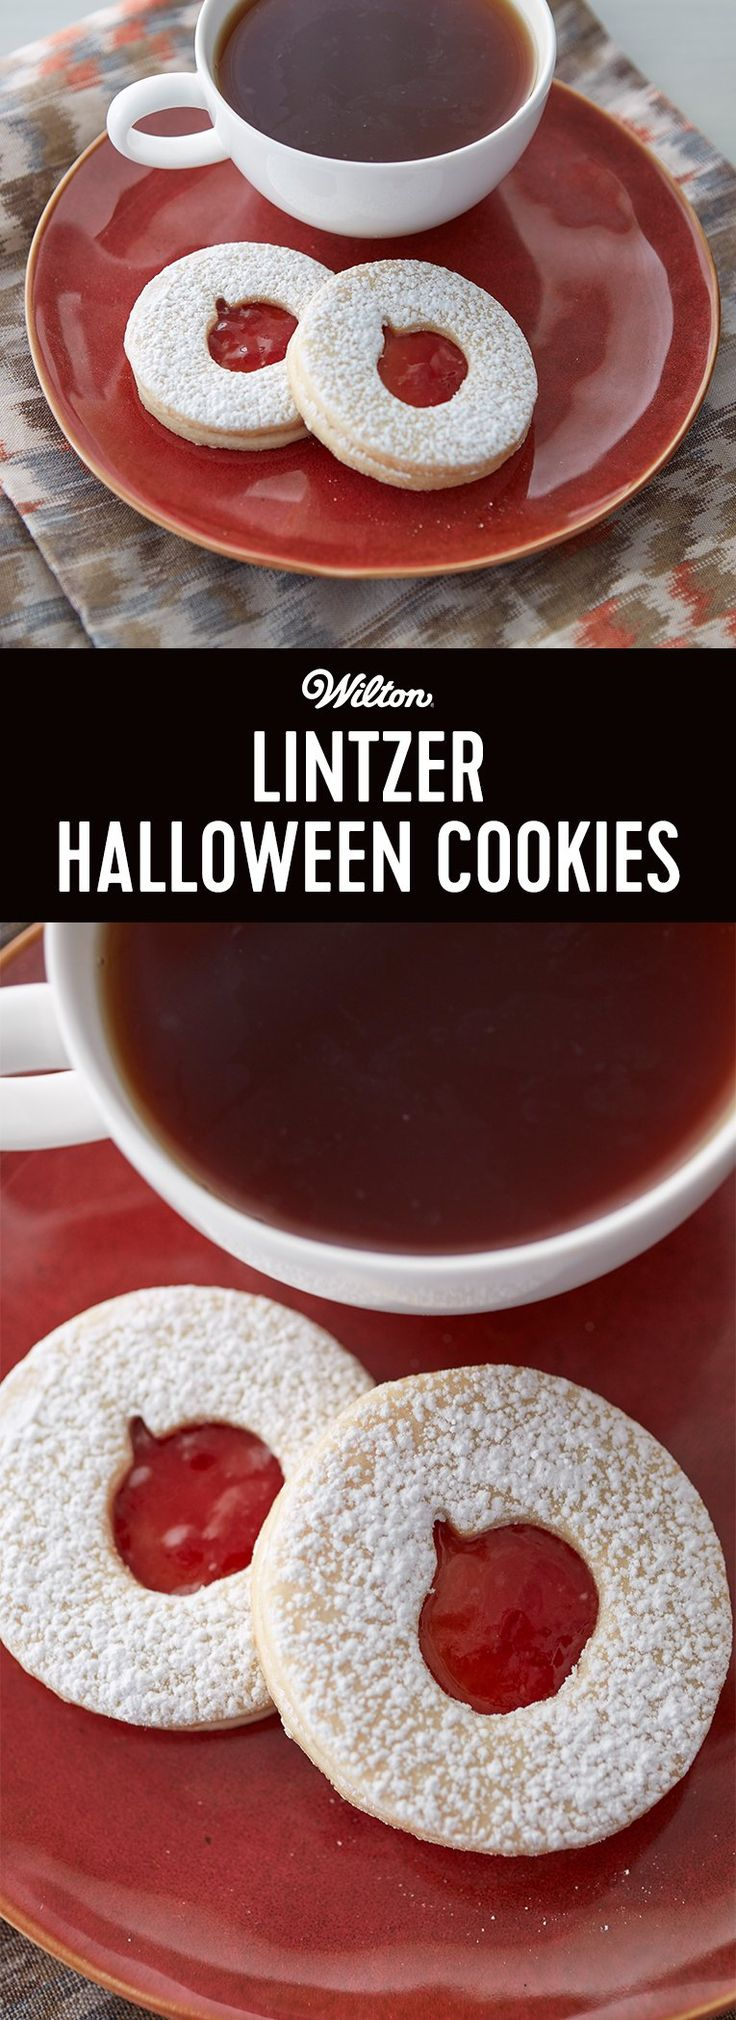 Lintzer Halloween Cookies - Here is the perfect treat for the more refined trick-or-treaters. Traditional Linzer cookies take on a Halloween look with a pumpkin cut out on the top cookie, showing the bright and tasty raspberry preserves inside! #cookierecipe #halloweencookies